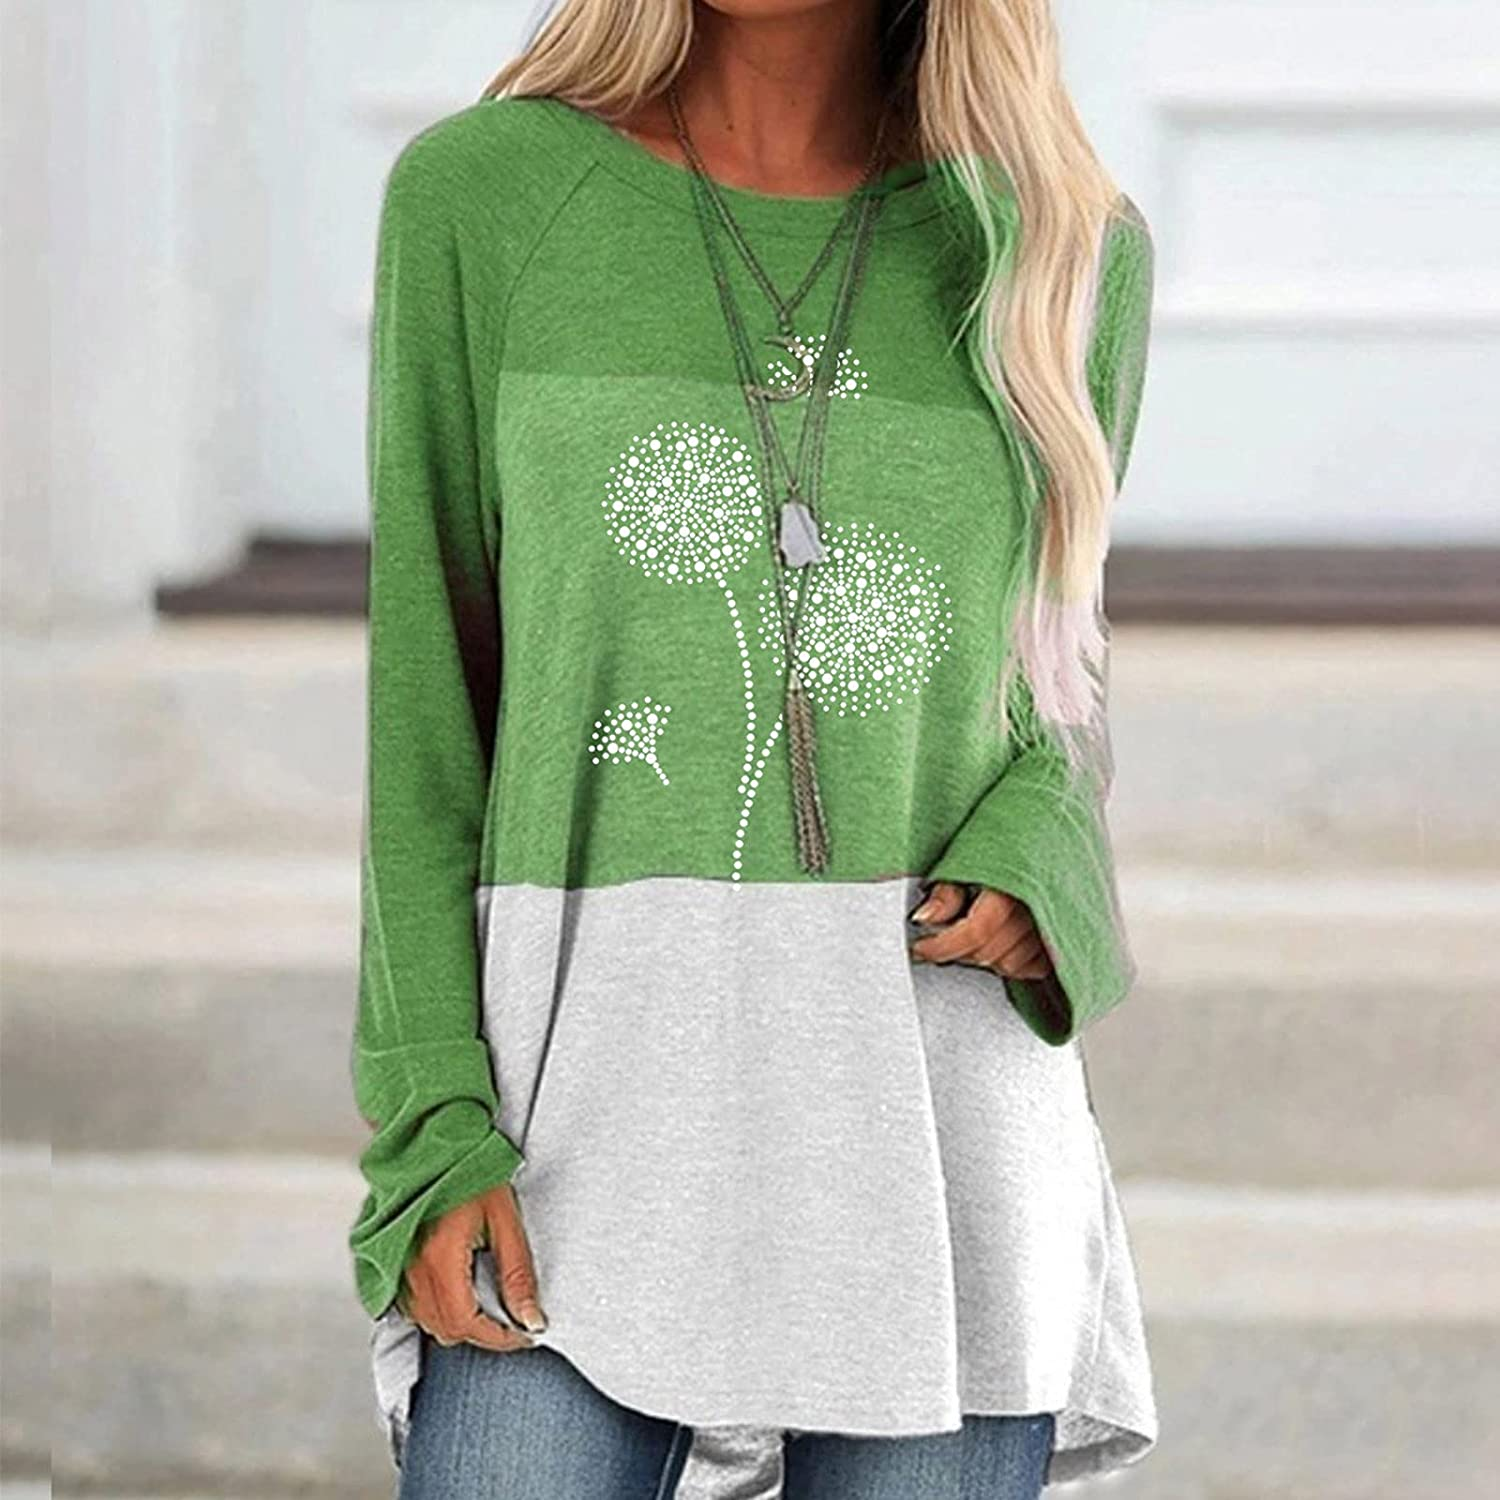 Womens Color Block Sweatshirt Loose Fit Tunic Tops Casual Workout Tops Long Sleeve Shirts Fall Tunic